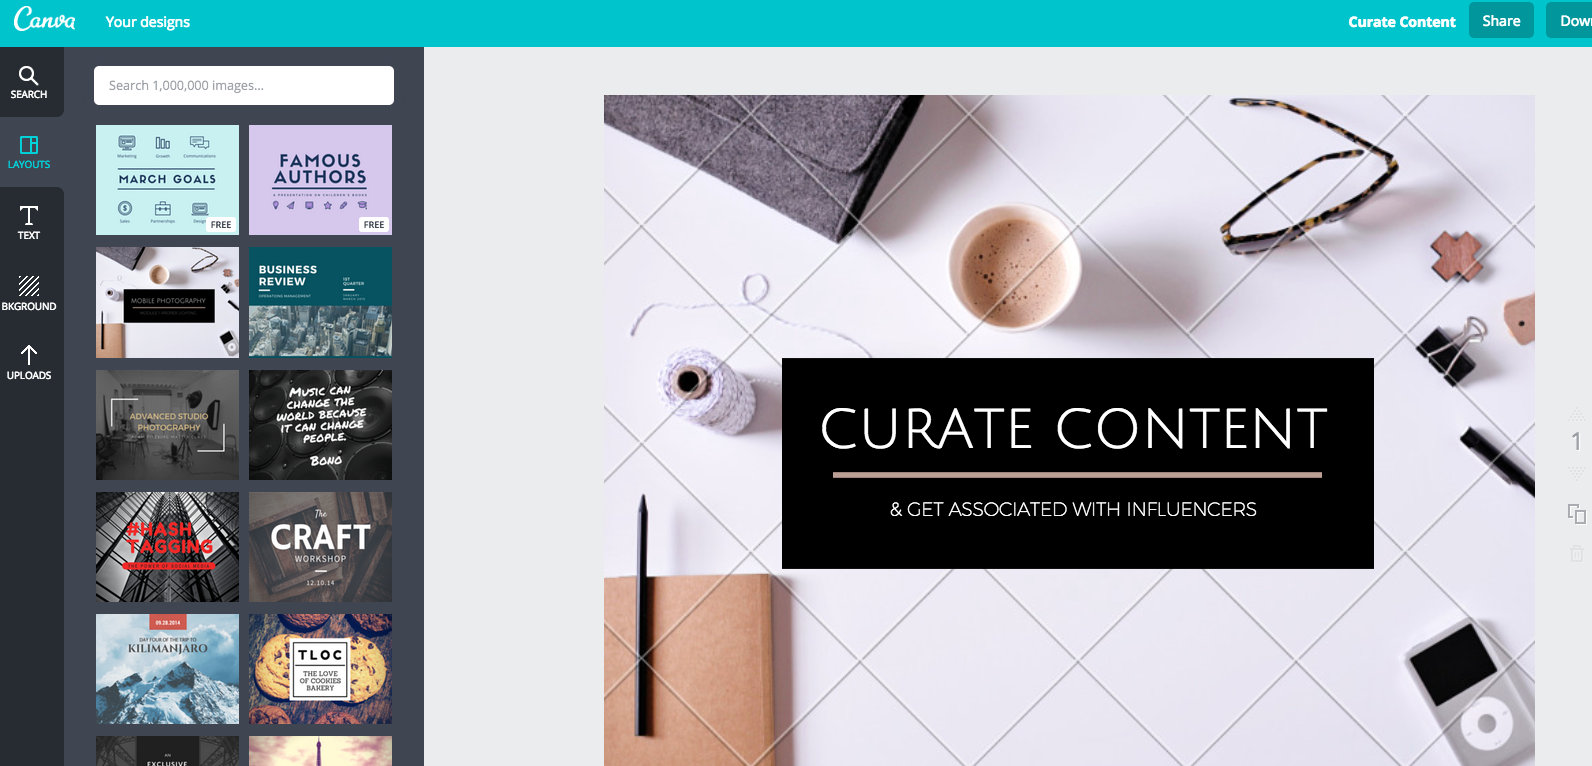 Canva - Graphics for Blog - Content Marketing Tools